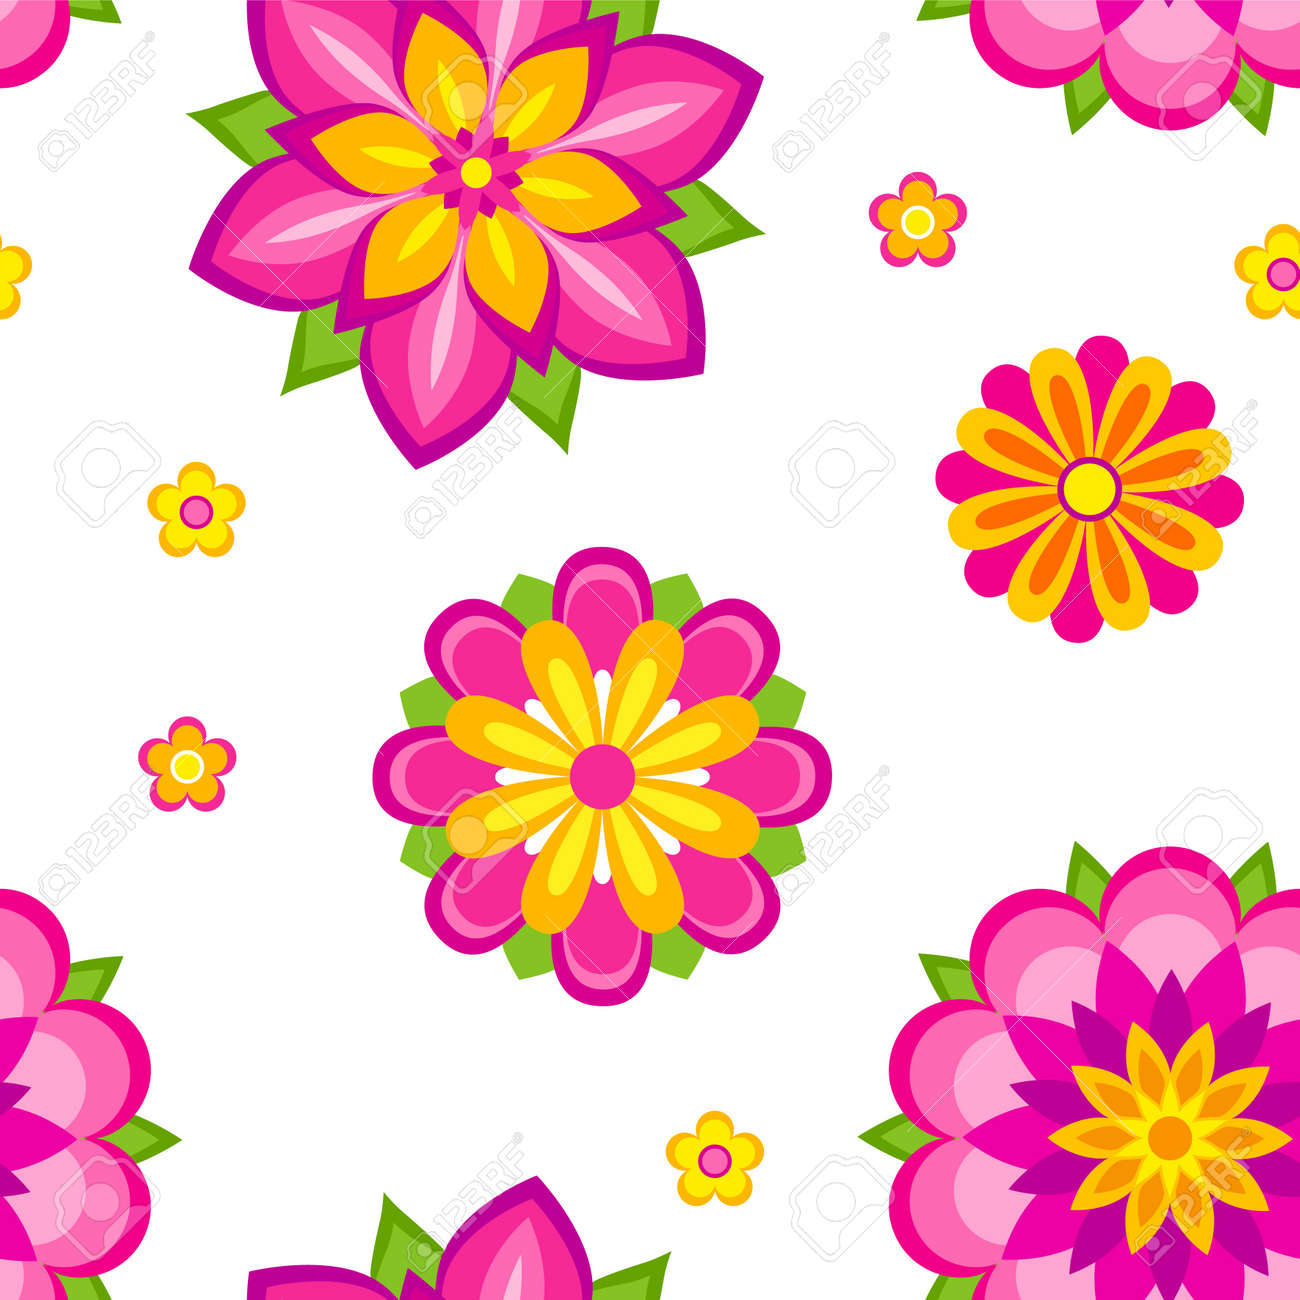 Seamless pattern of colorful decorative flowers Stock Vector - 10928299